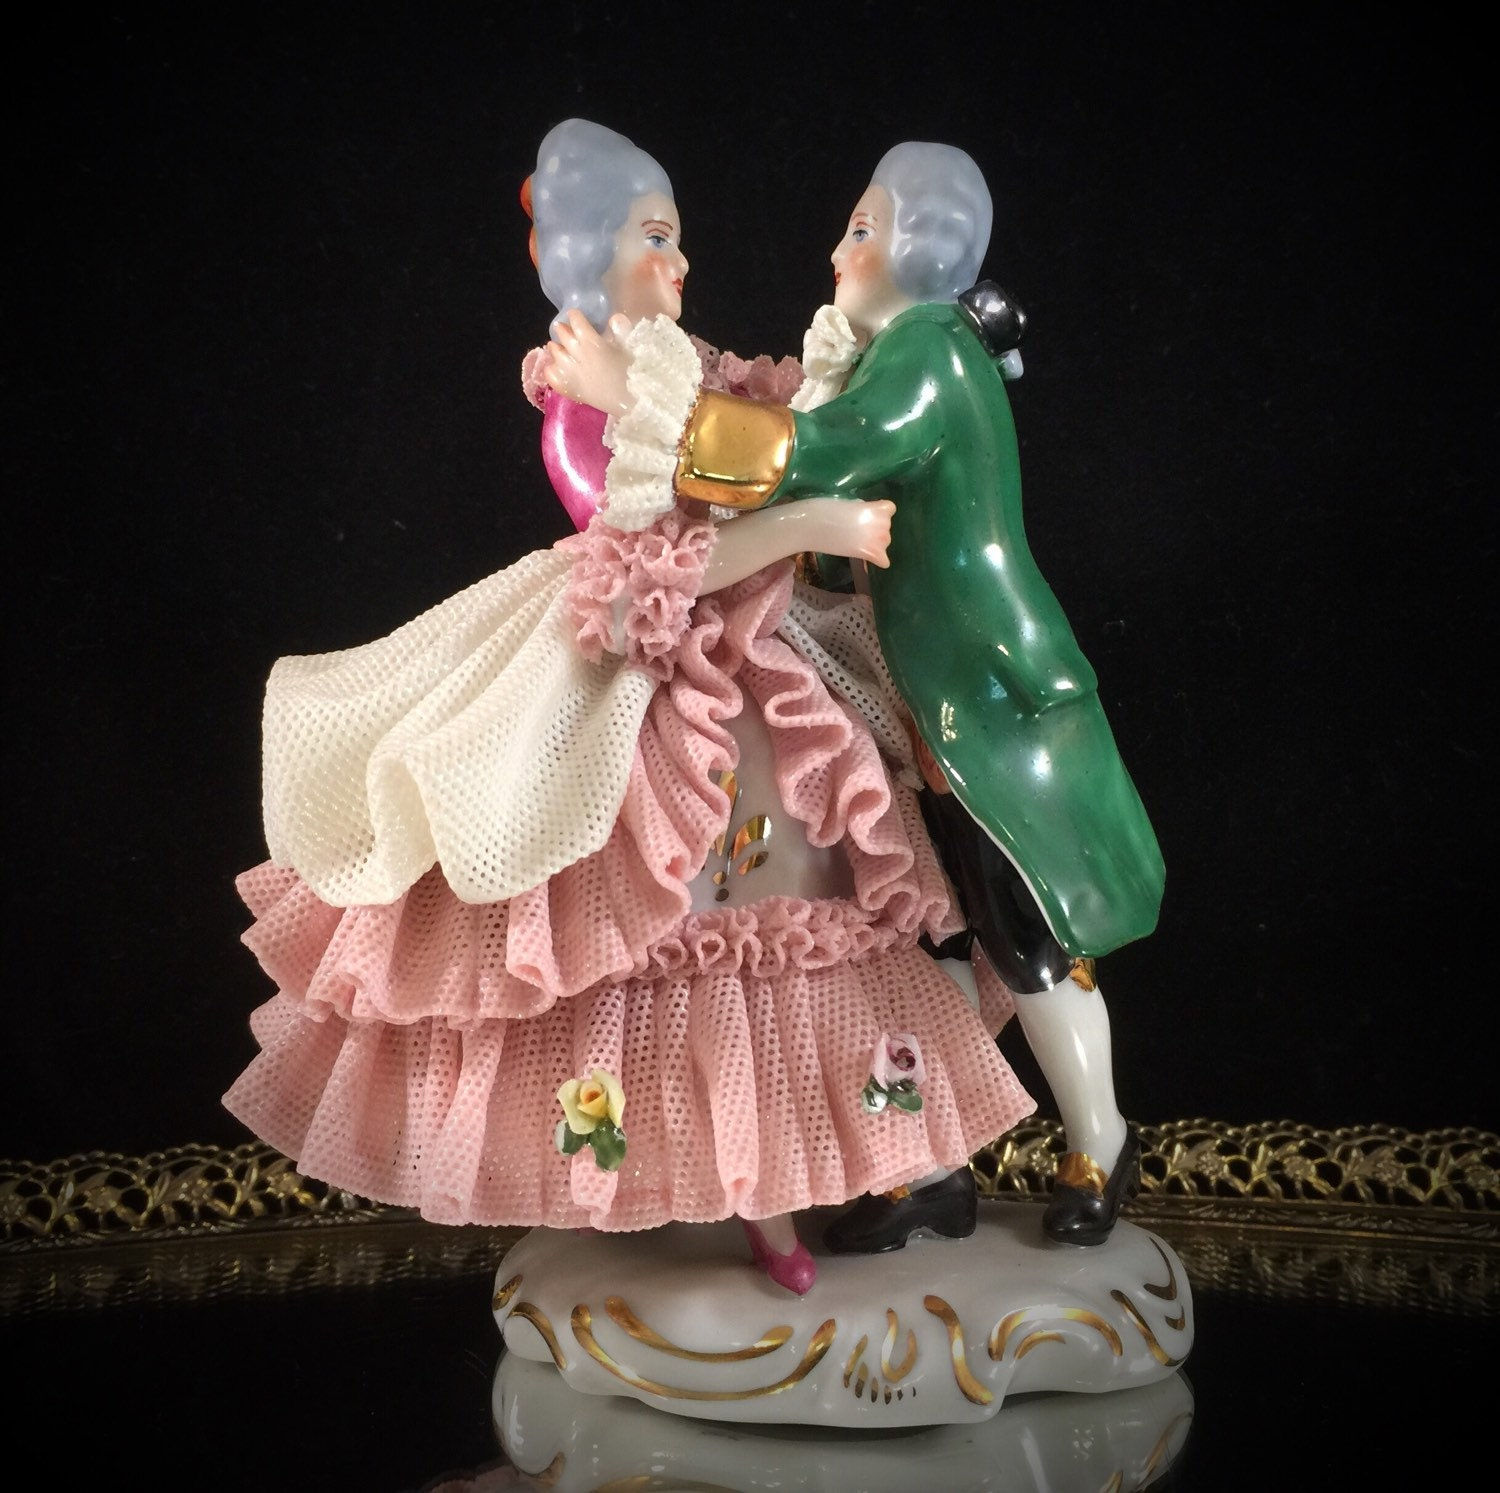 Dating dresden figurines